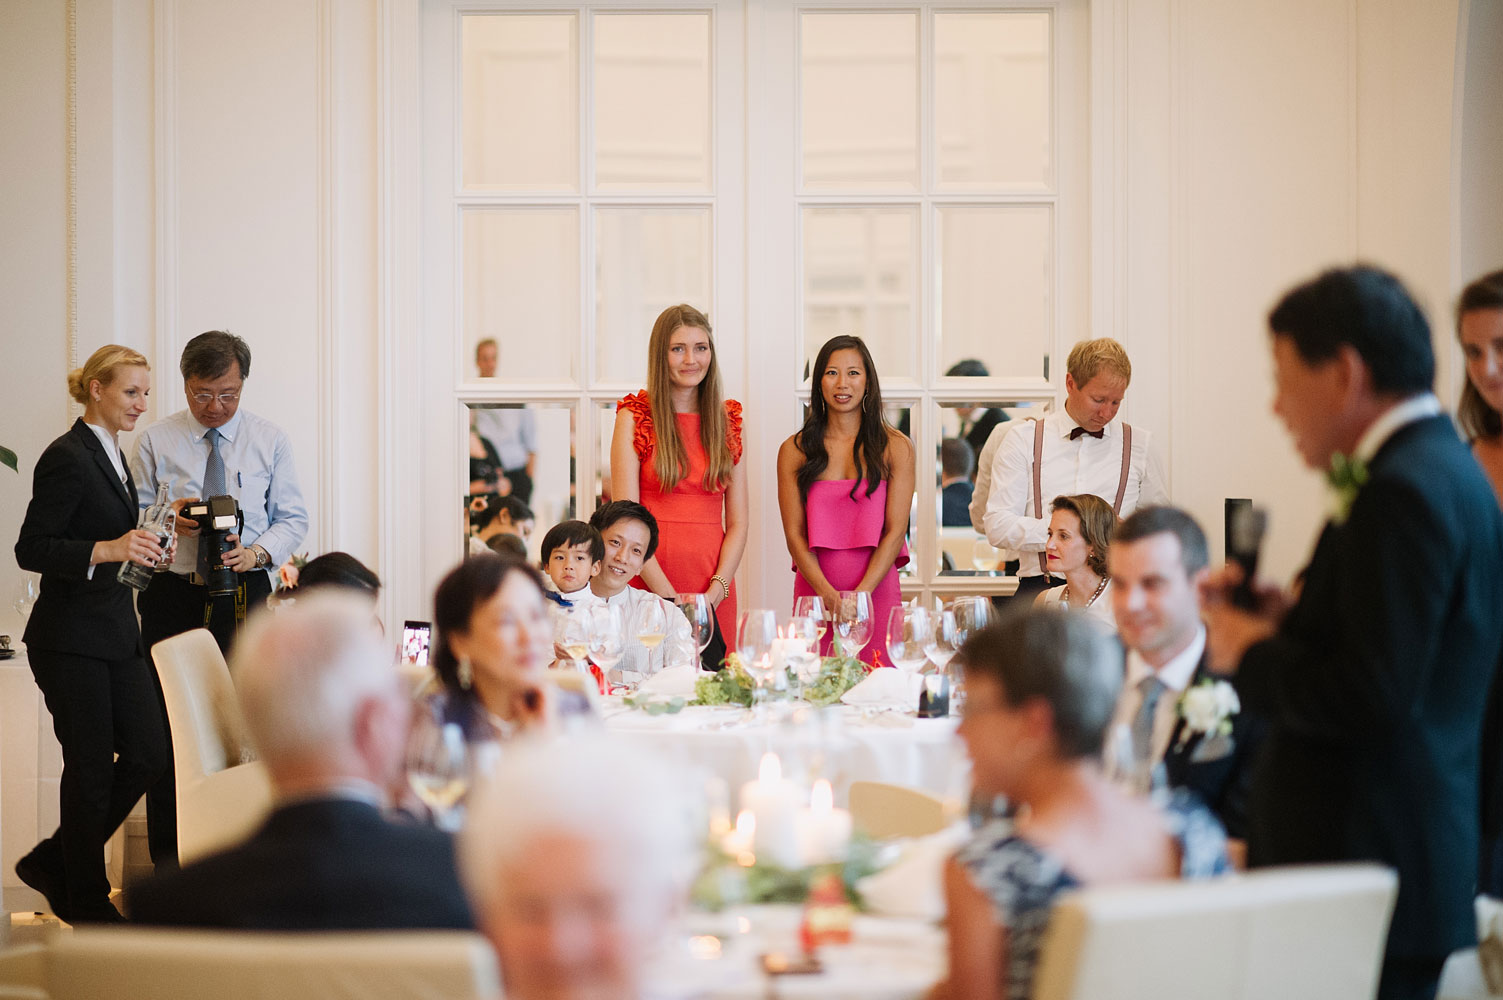 wedding_photographer_luzern_vitznau_41.jpg